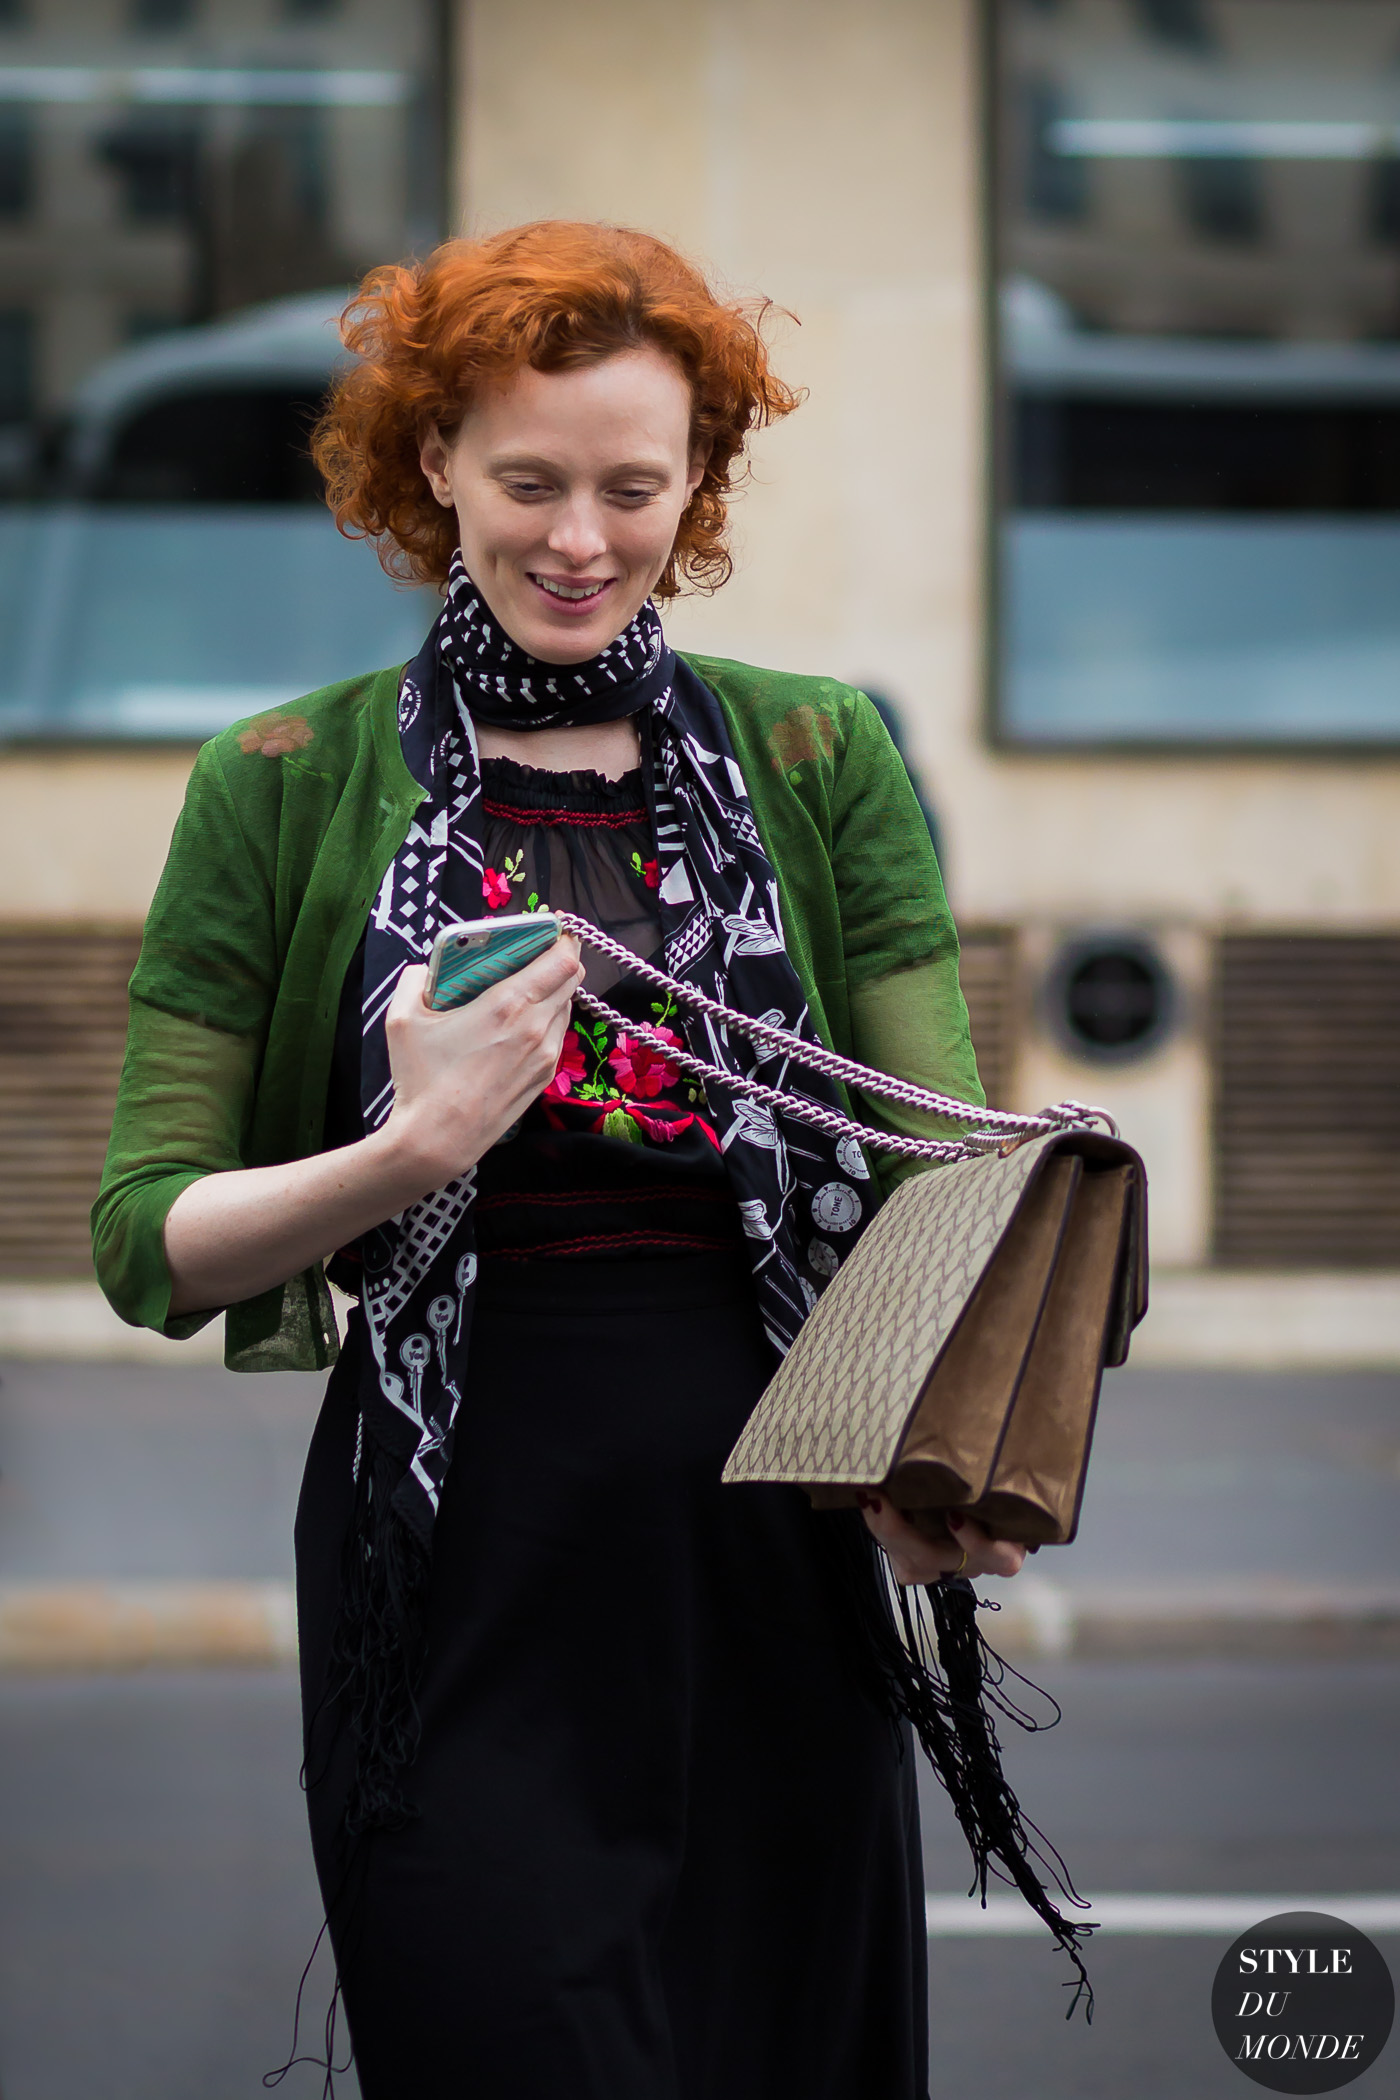 Karen Elson Street Style Street Fashion Streetsnaps by STYLEDUMONDE Street Style Fashion Photography